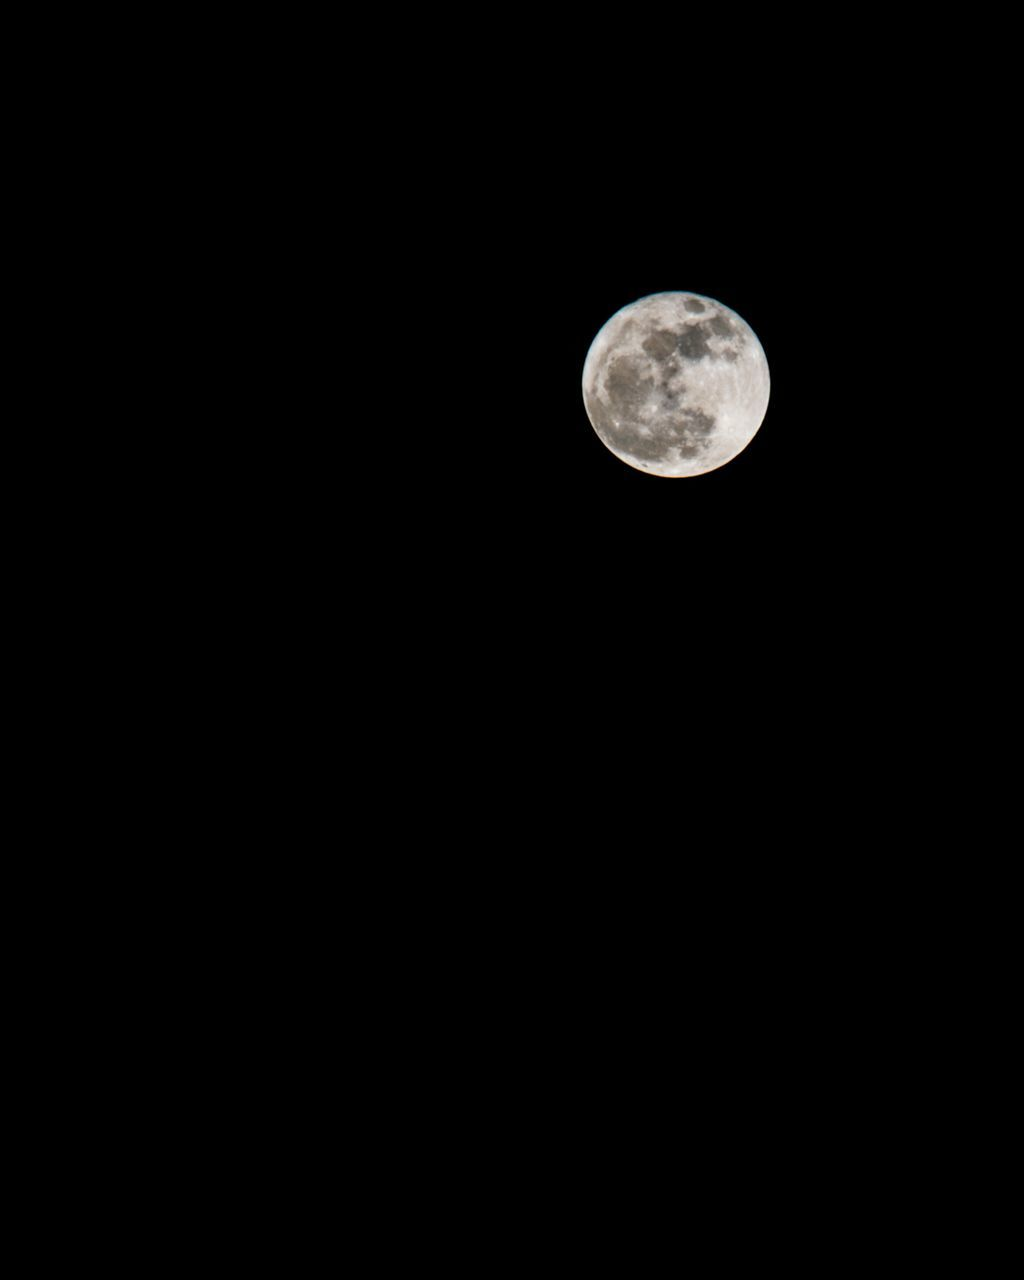 LOW ANGLE VIEW OF FULL MOON AGAINST CLEAR SKY